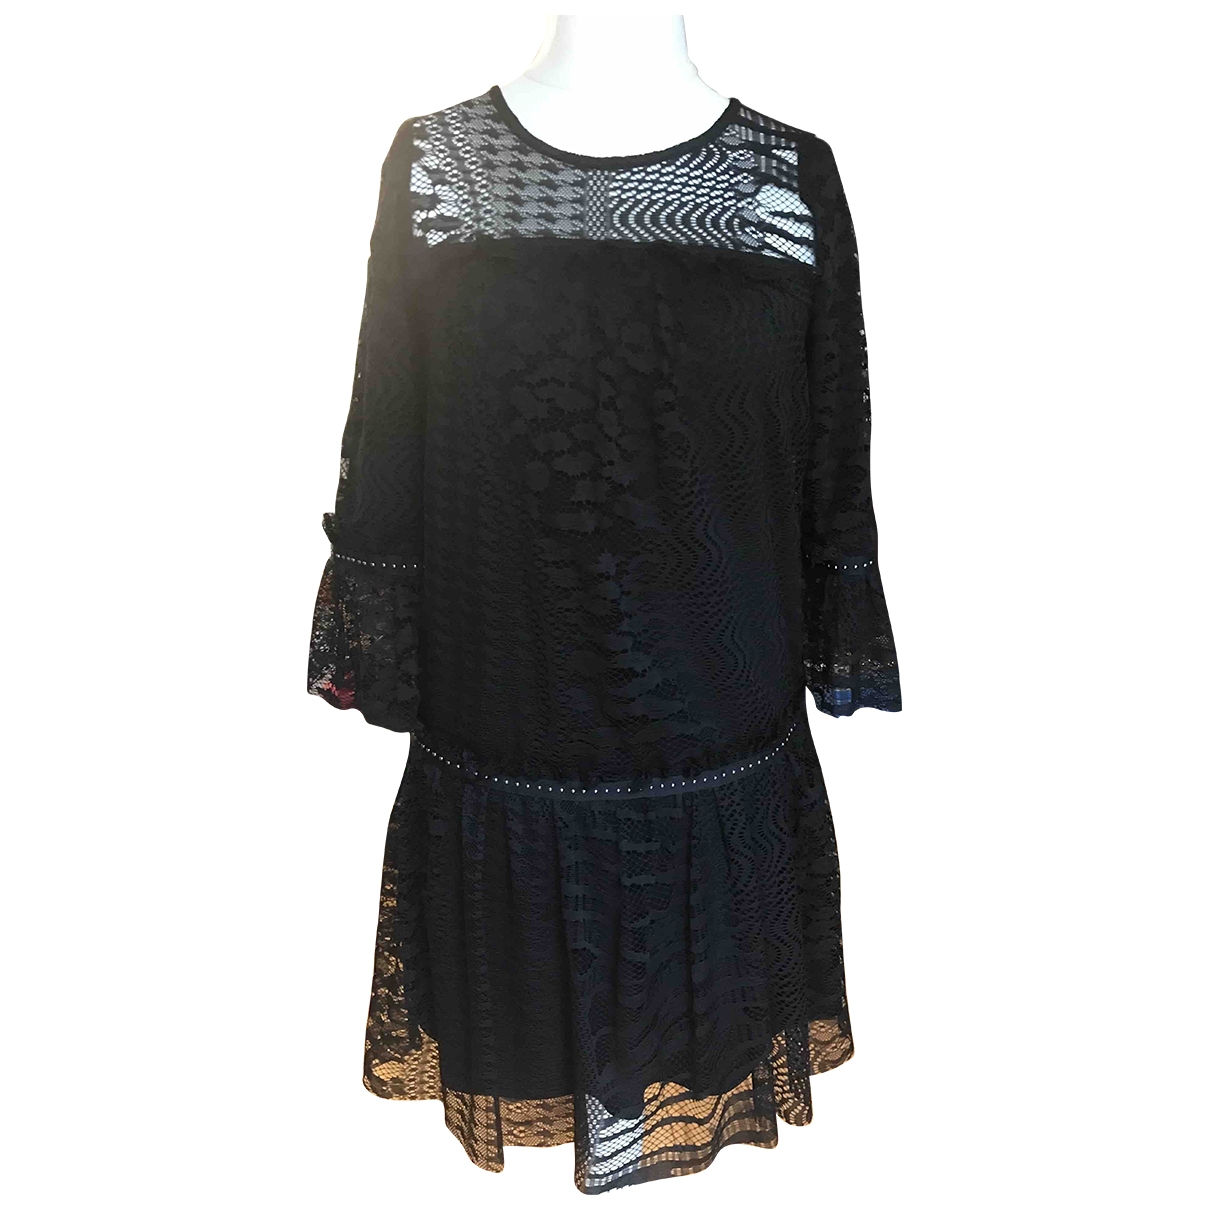 Liu.jo \N Black dress for Women 40 FR